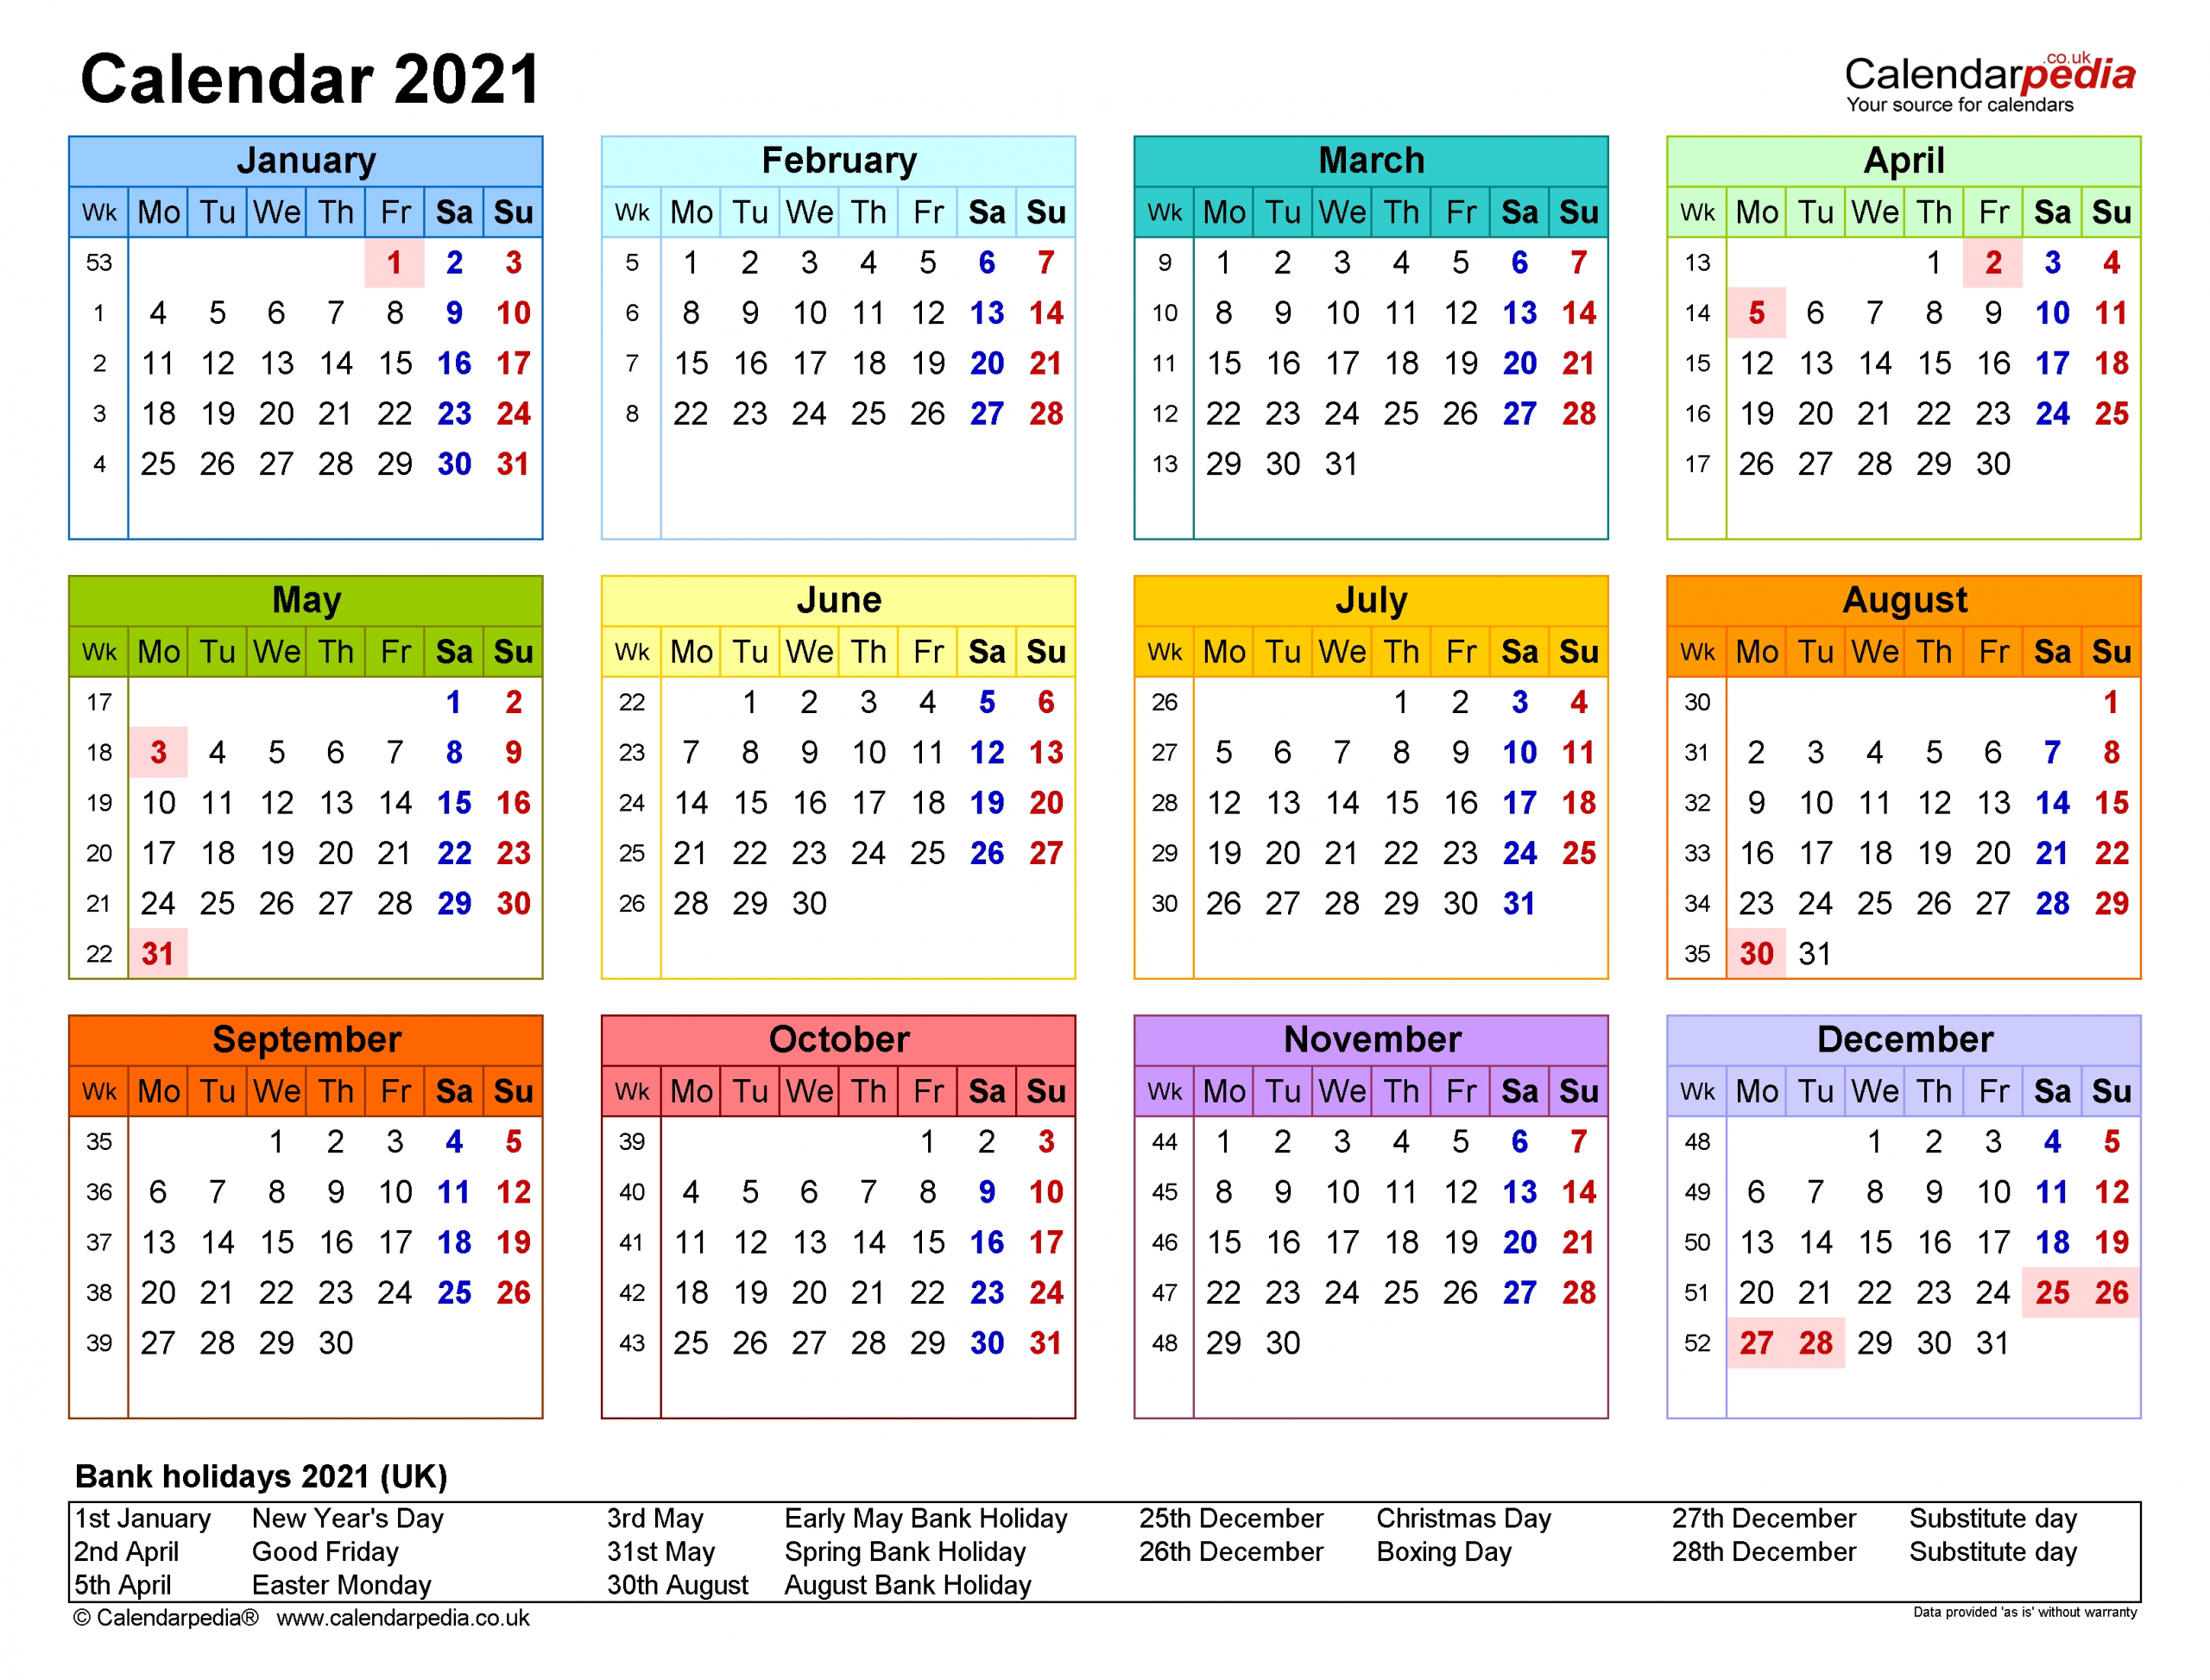 Calendar 2021 (Uk) - Free Printable Microsoft Word Templates intended for Calendar With Numbered Days 2021 Photo